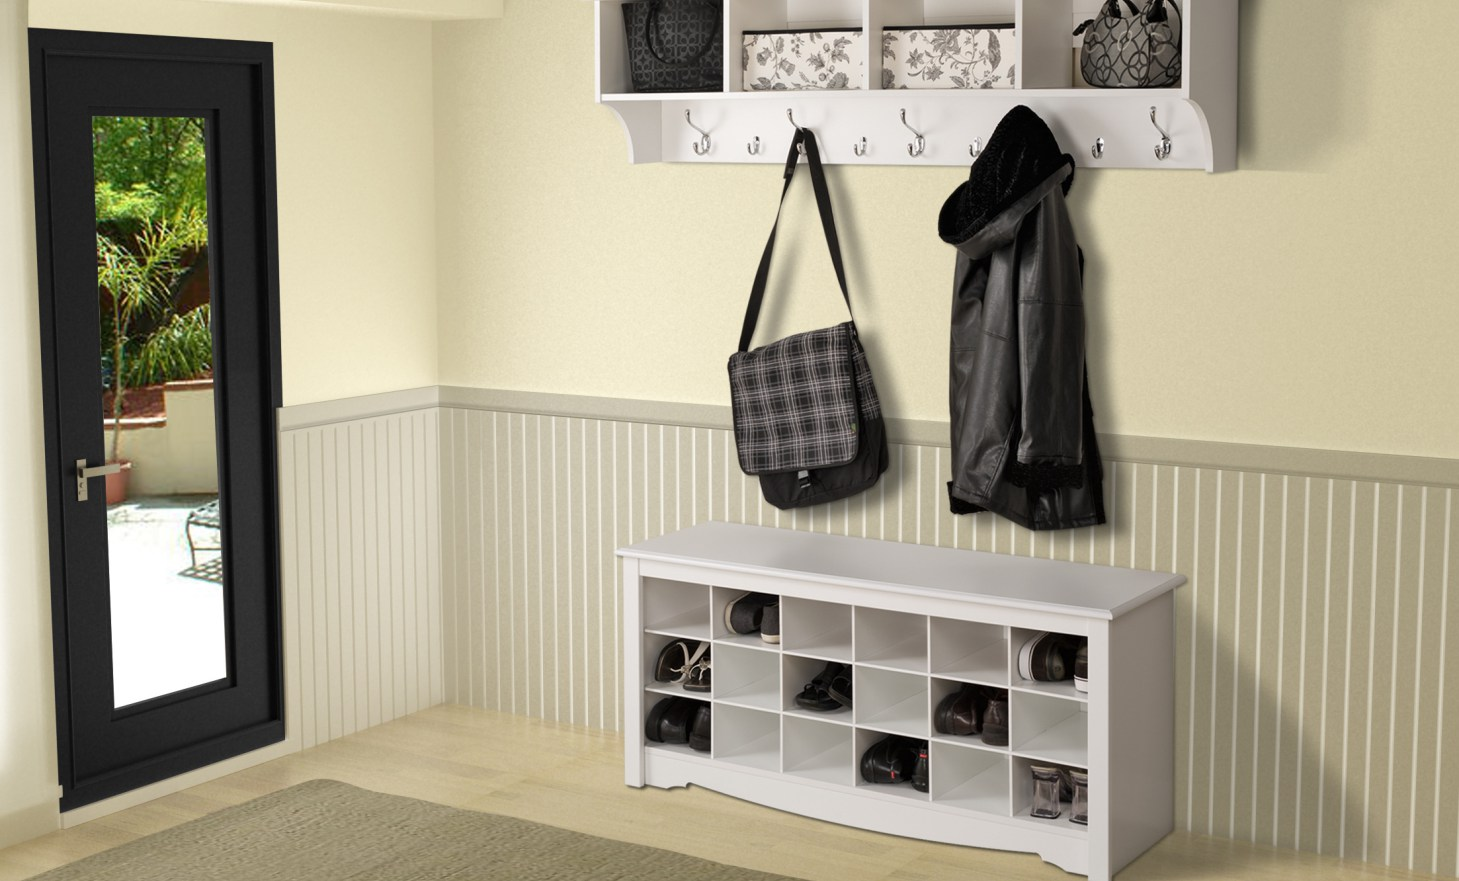 Entryway Storage Bench with Coat Rack for Inspiring Storage Design Ideas: Coat Rack Shoe Rack | Foyer Bench Coat Rack | Entryway Storage Bench With Coat Rack